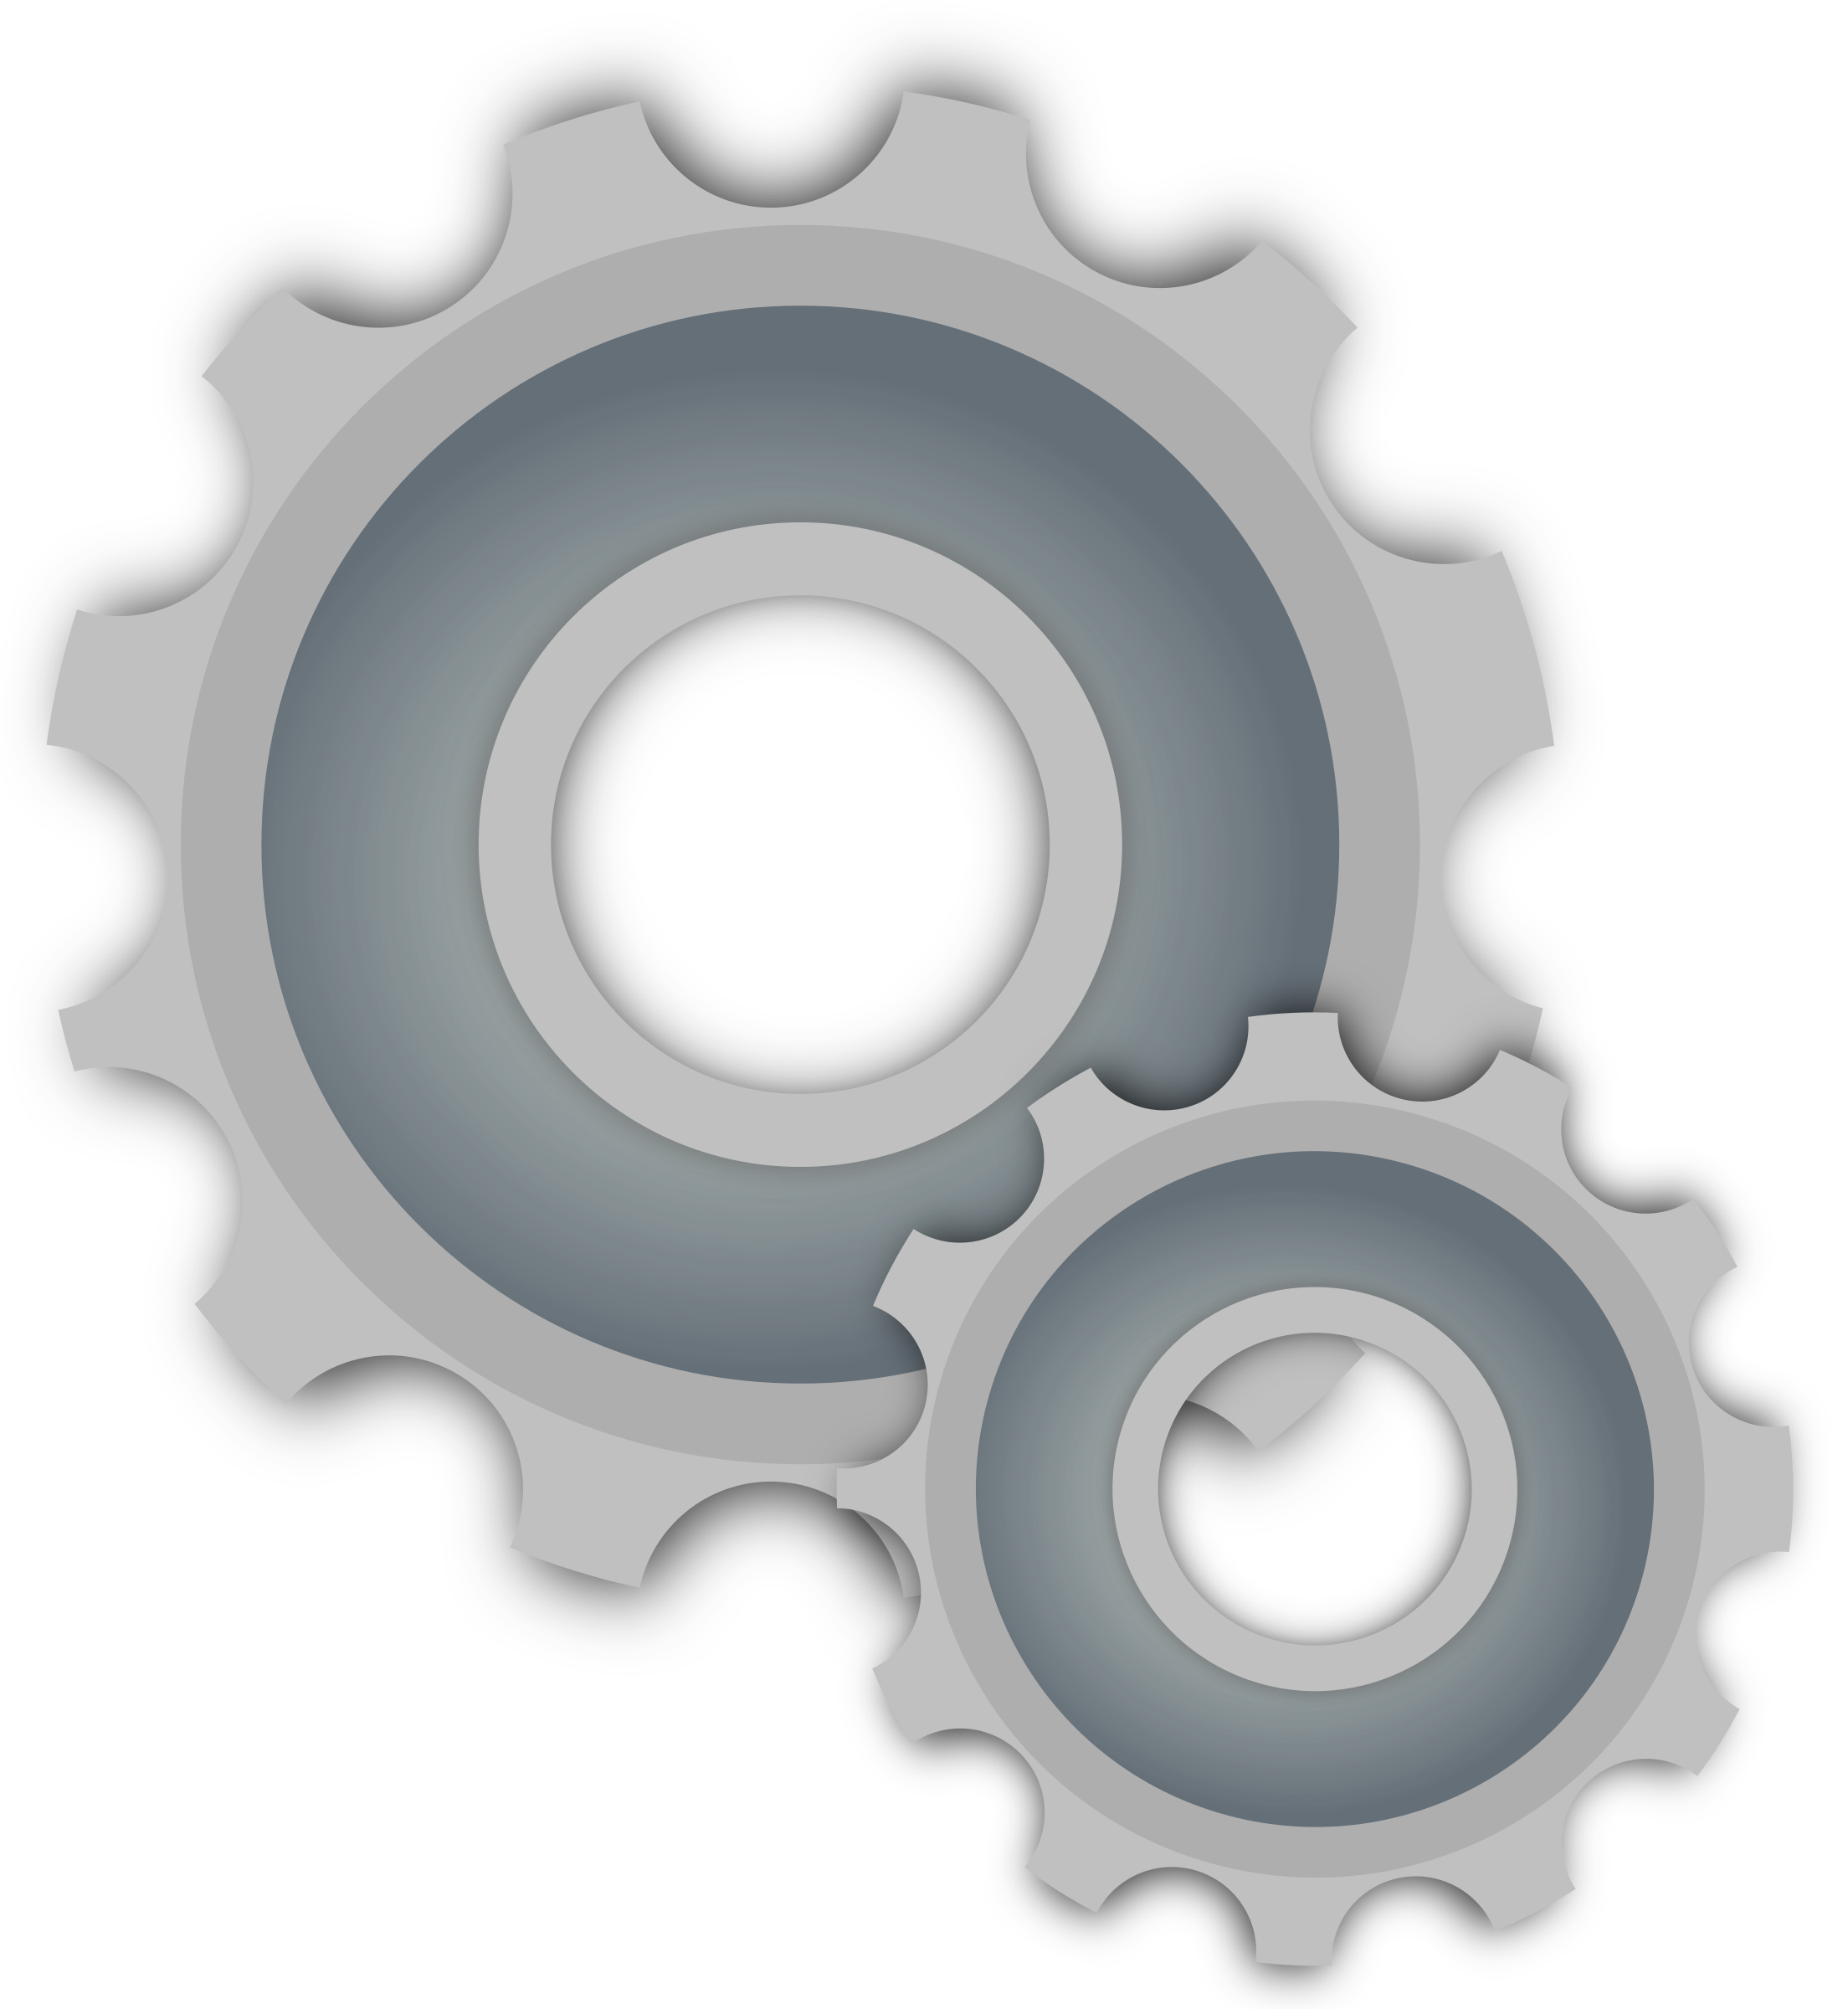 Big image png. Gears clipart mechanical part